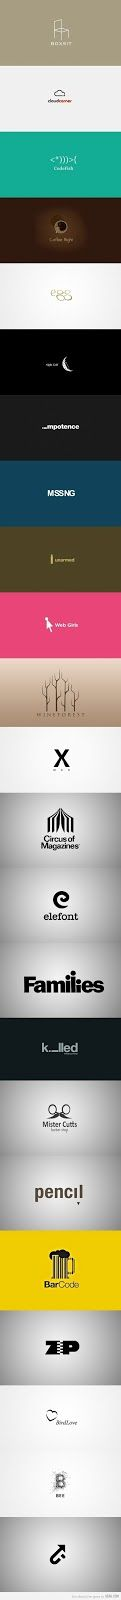 all time images: Logo inspiration #logos #design #graphic